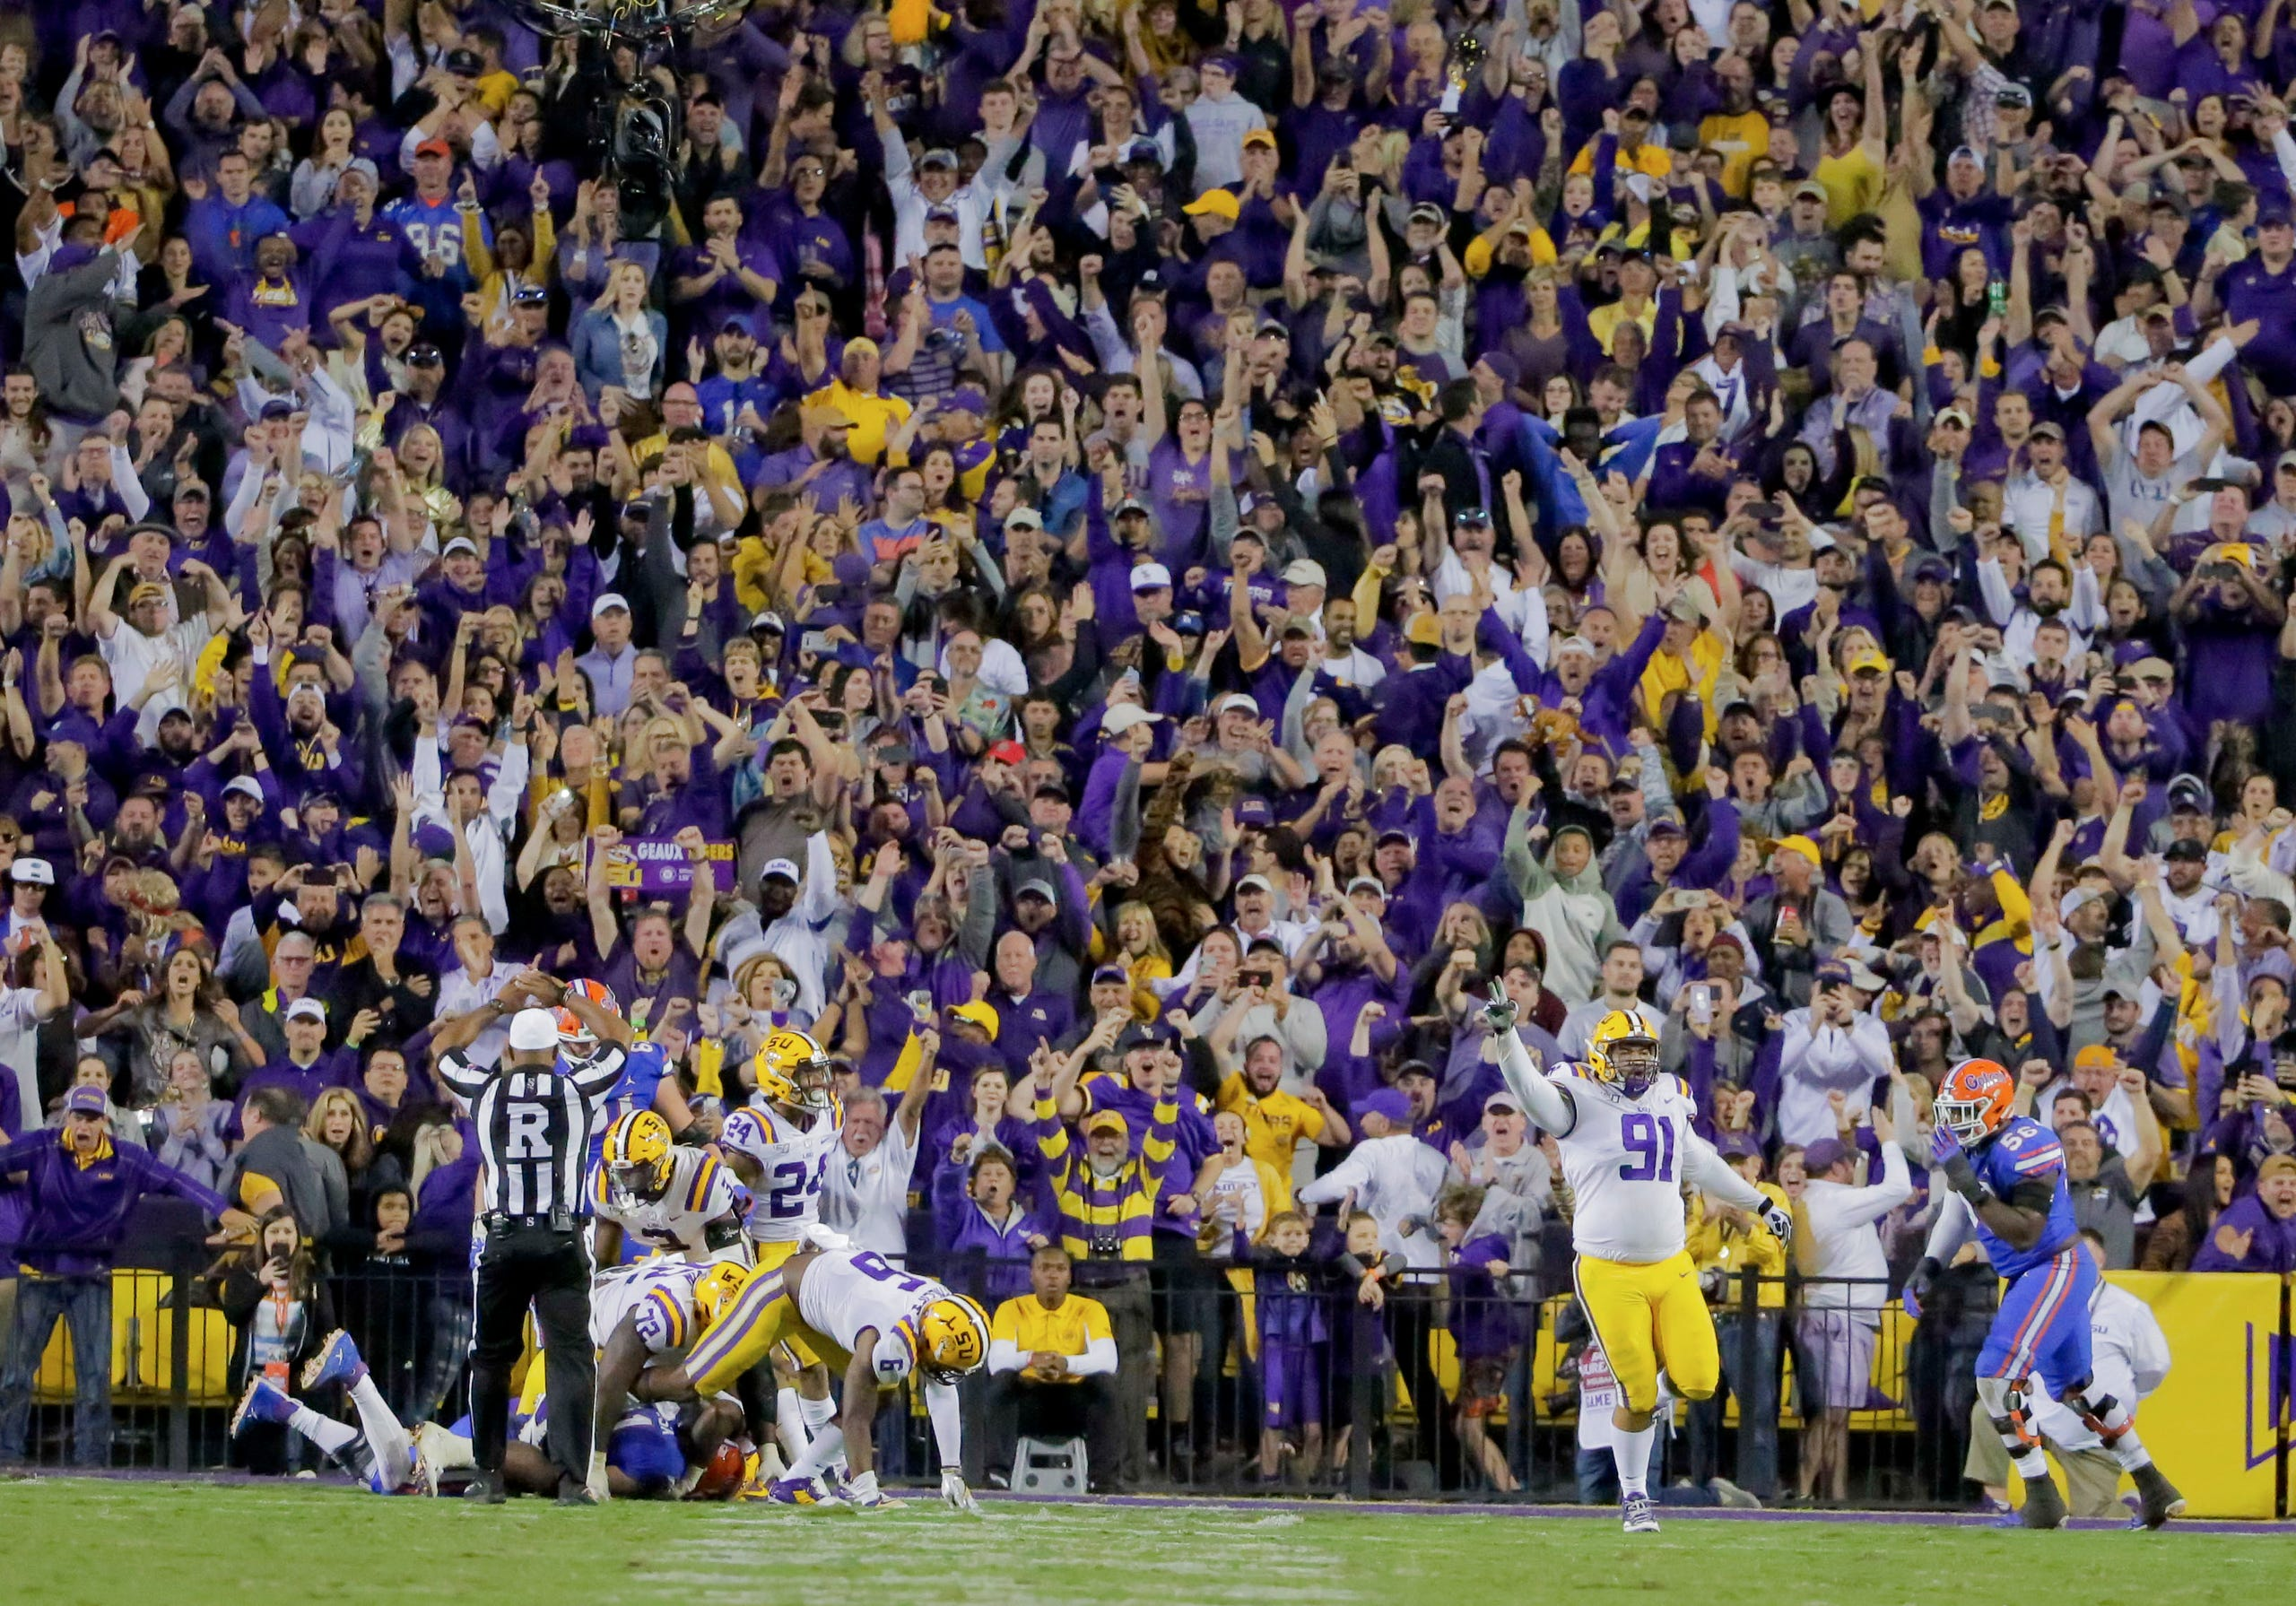 College Football Best Photos From Week 7